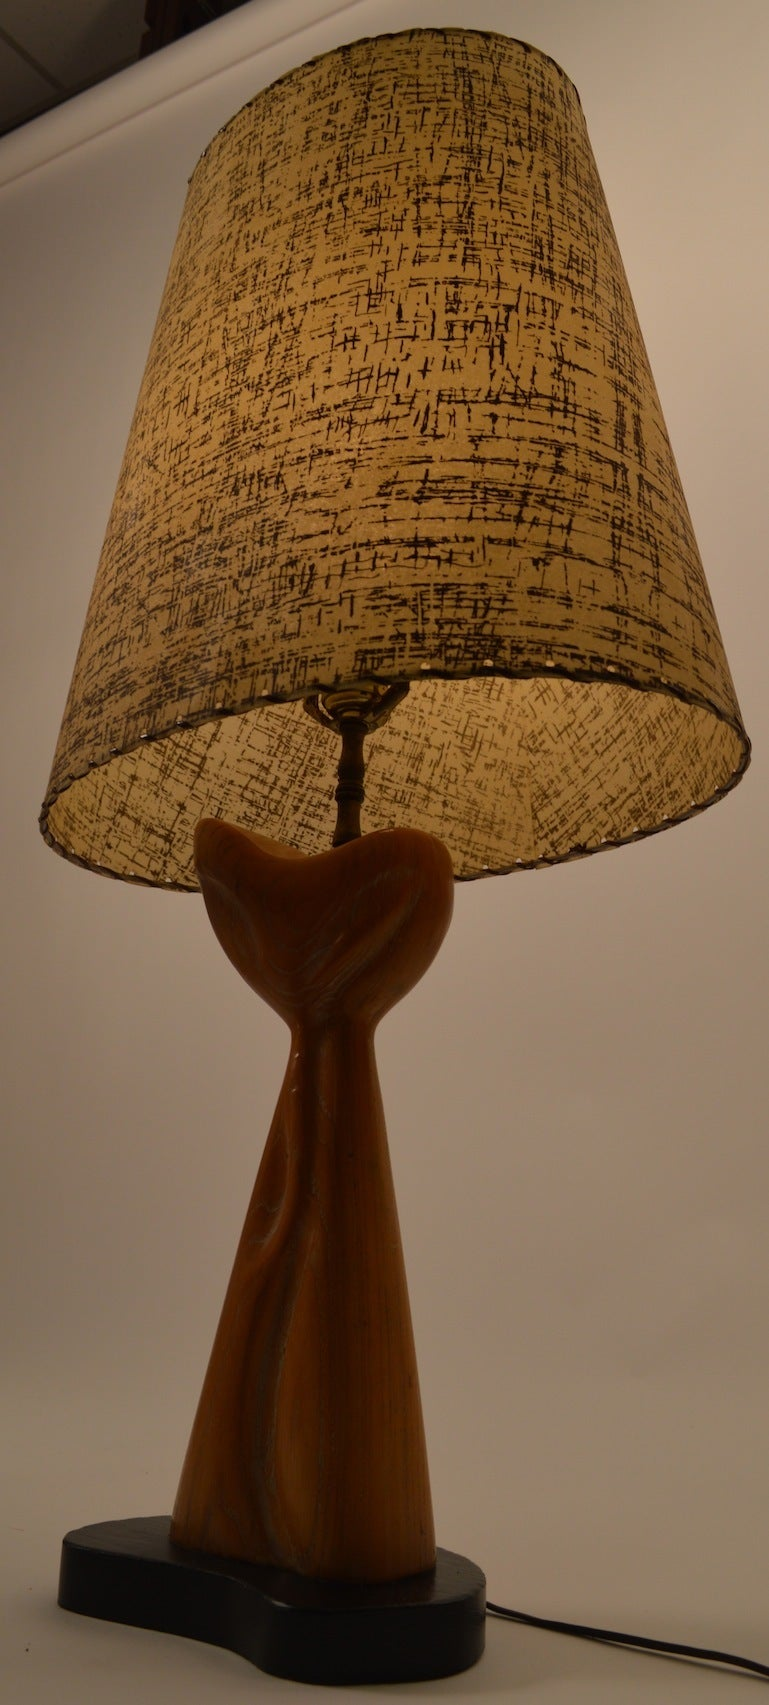 Cerused Oak Table Lamp Attributed to Heifetz In Excellent Condition For Sale In New York, NY